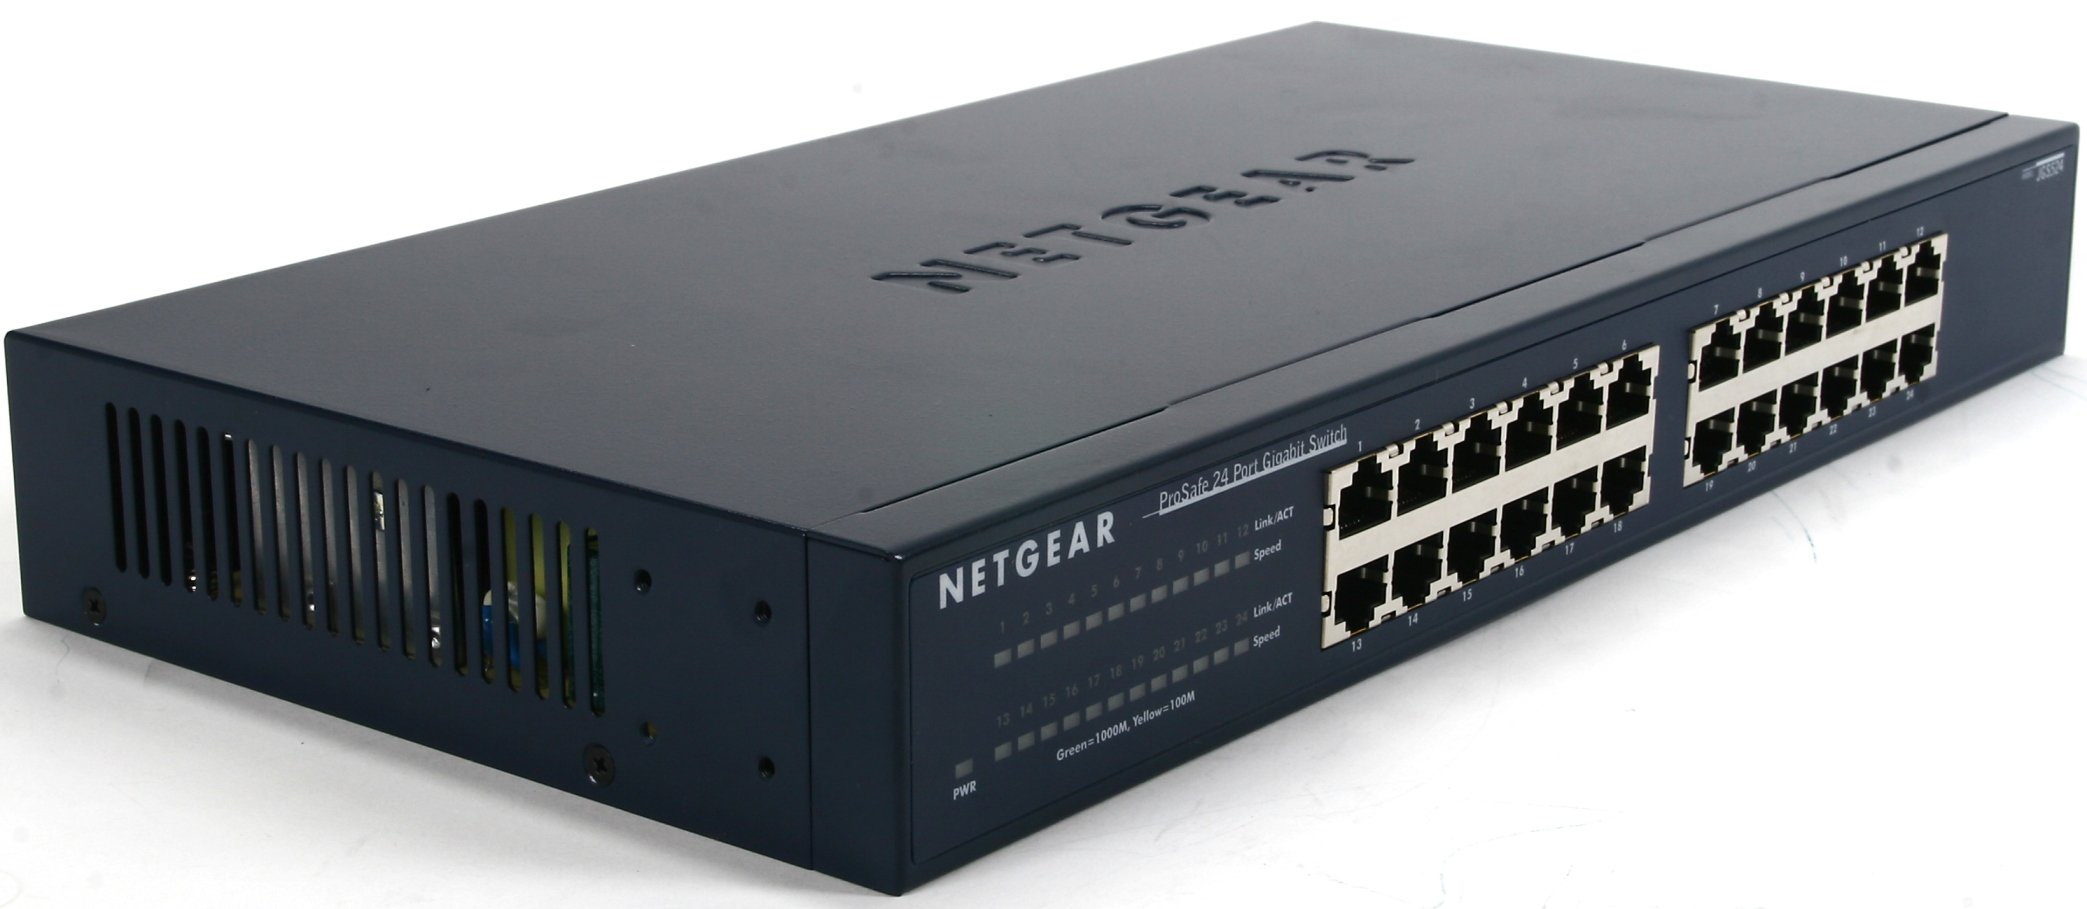 NETGEAR JGS524NA 24-Port Gigabit Ethernet Rackmount Network Switch | Lifetime Next Business Day Replacement | Sturdy Metal | Desktop | Plug-and-Play | Unmanaged by NETGEAR